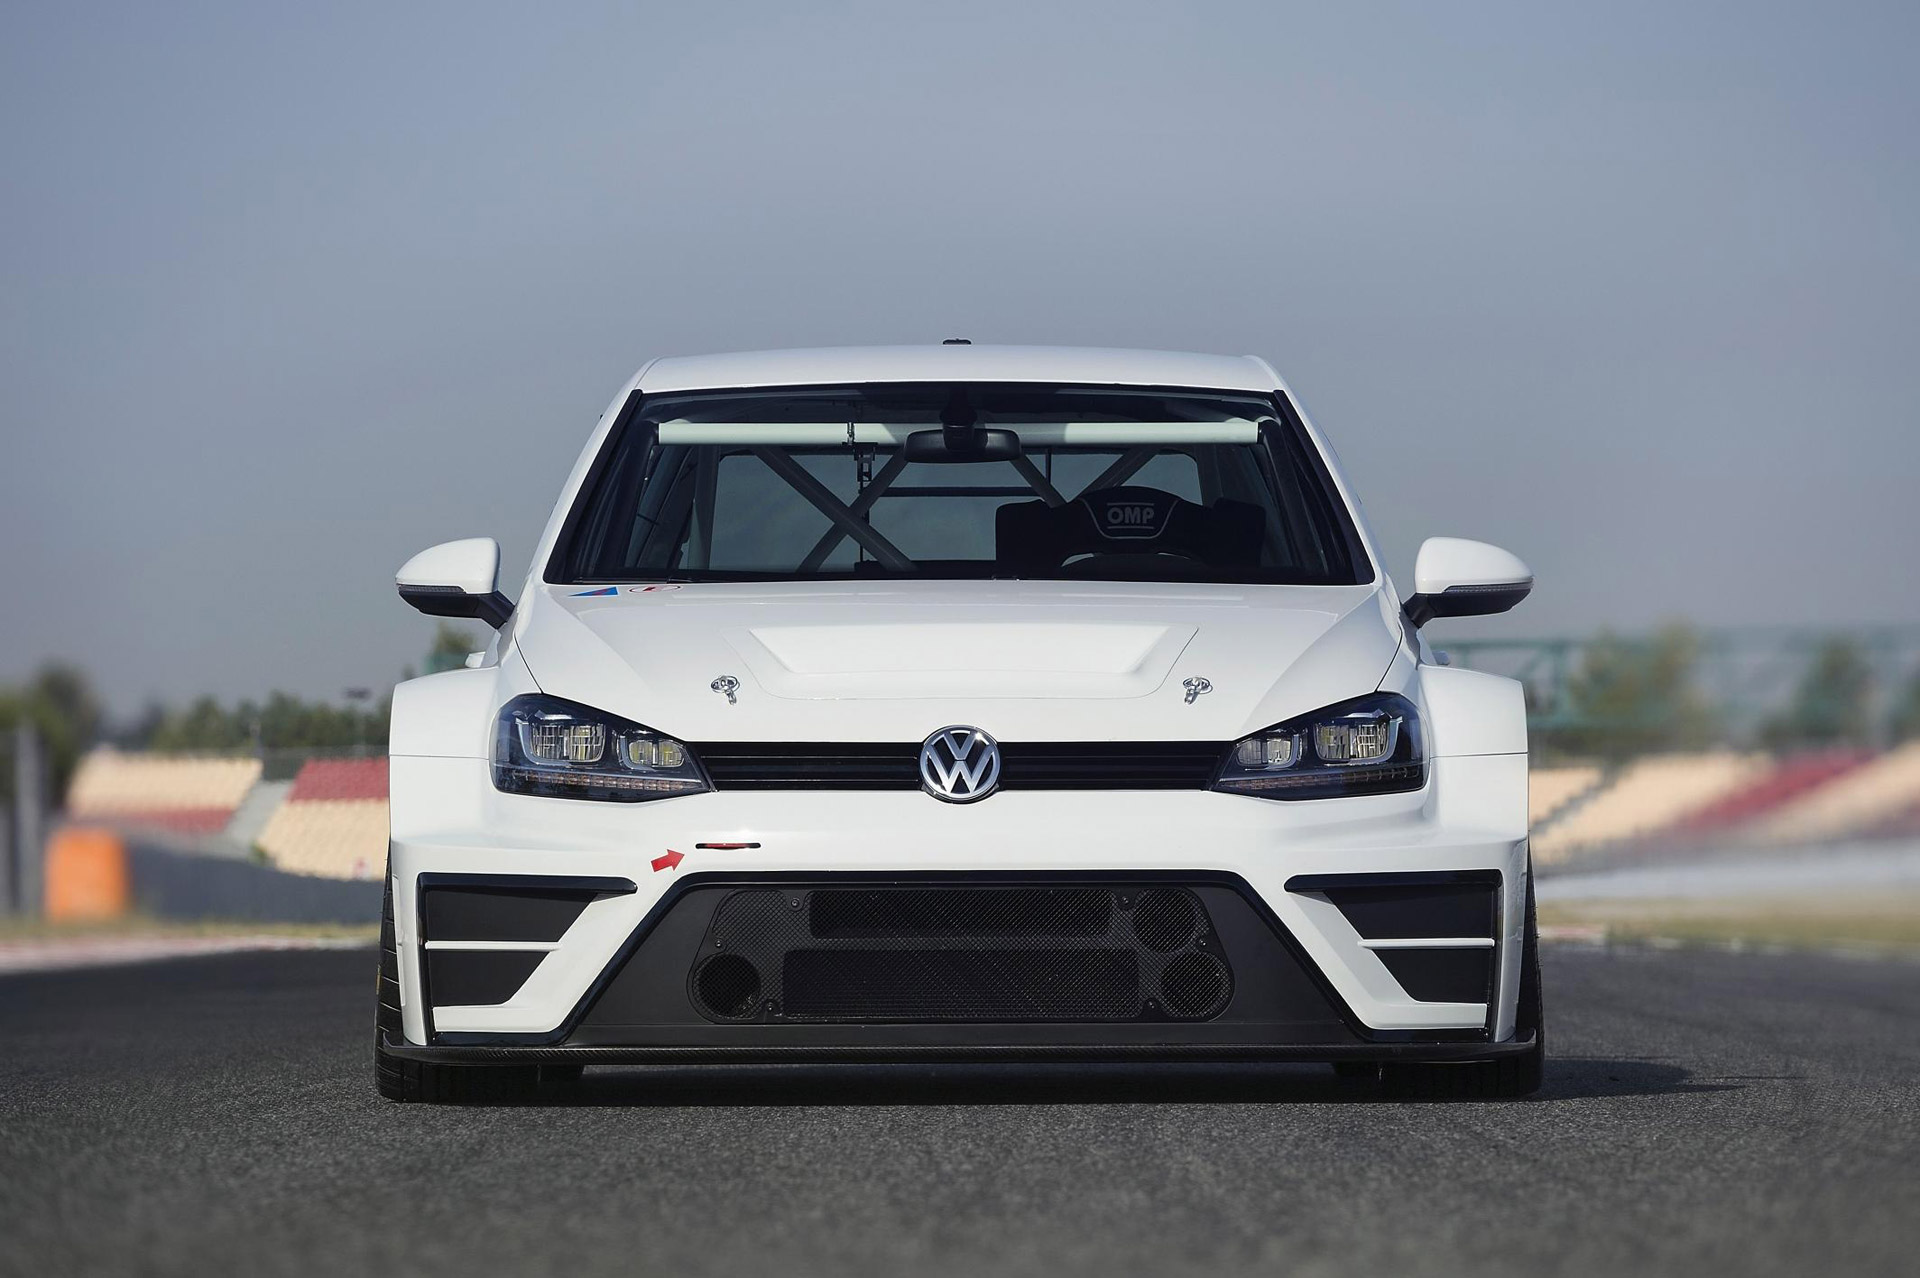 VW Reveals Radical Golf Racer For New Touringcar Racer ...